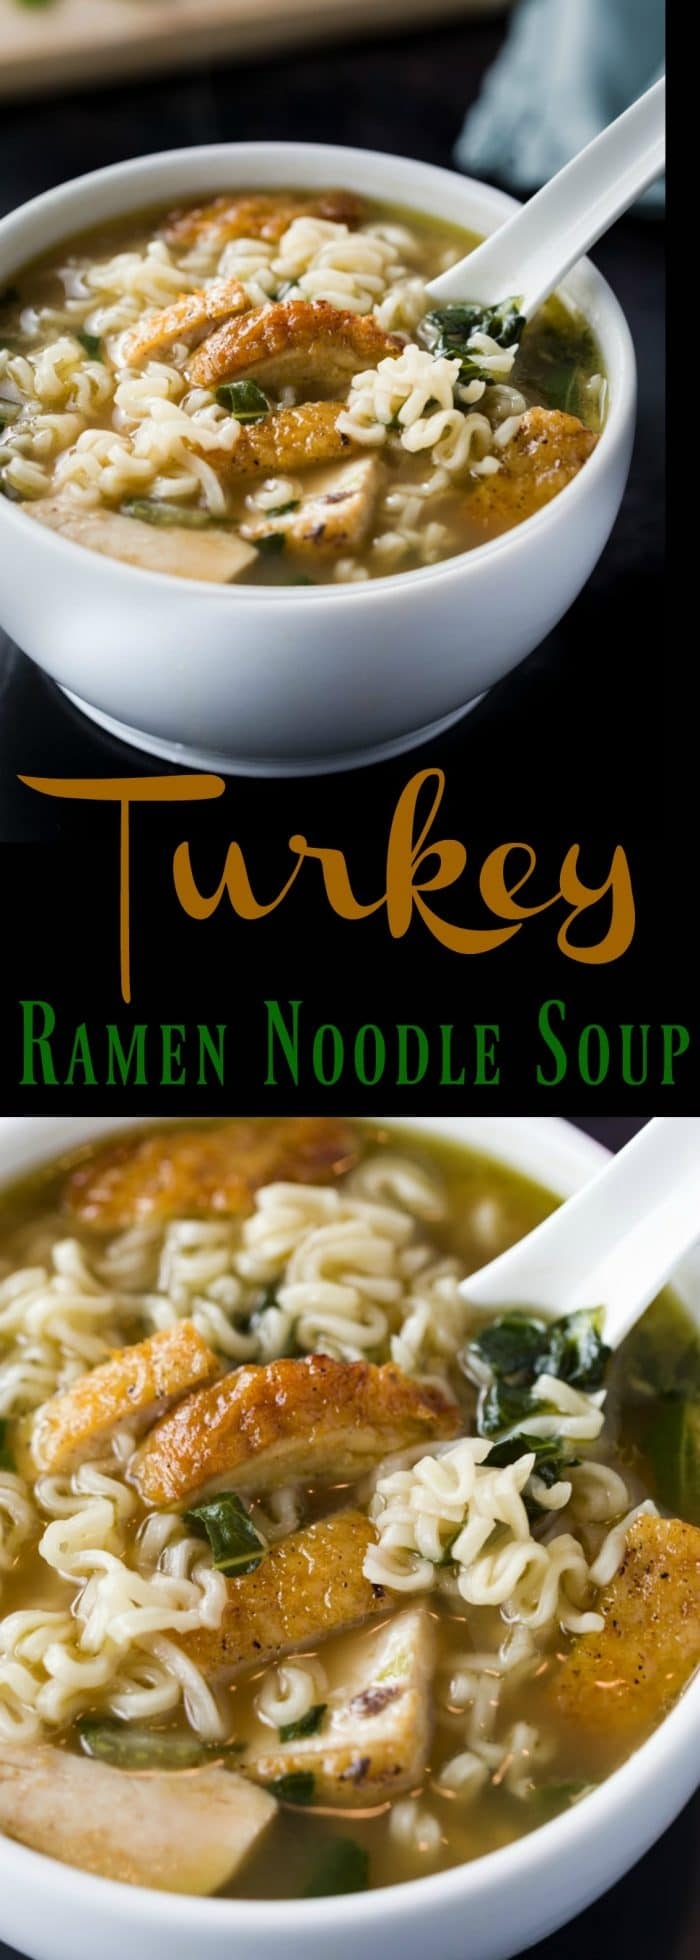 Juicy turkey is heated in sesame oil with a splash of soy sauce, then immersed in a savory turkey stock with Bok Choy and classic Ramen Noodles. | The Cozy Cook | #soup #turkey #ramennoodles #comfortfood #recipe #easyrecipes #meat #protein #thanksgivingleftovers